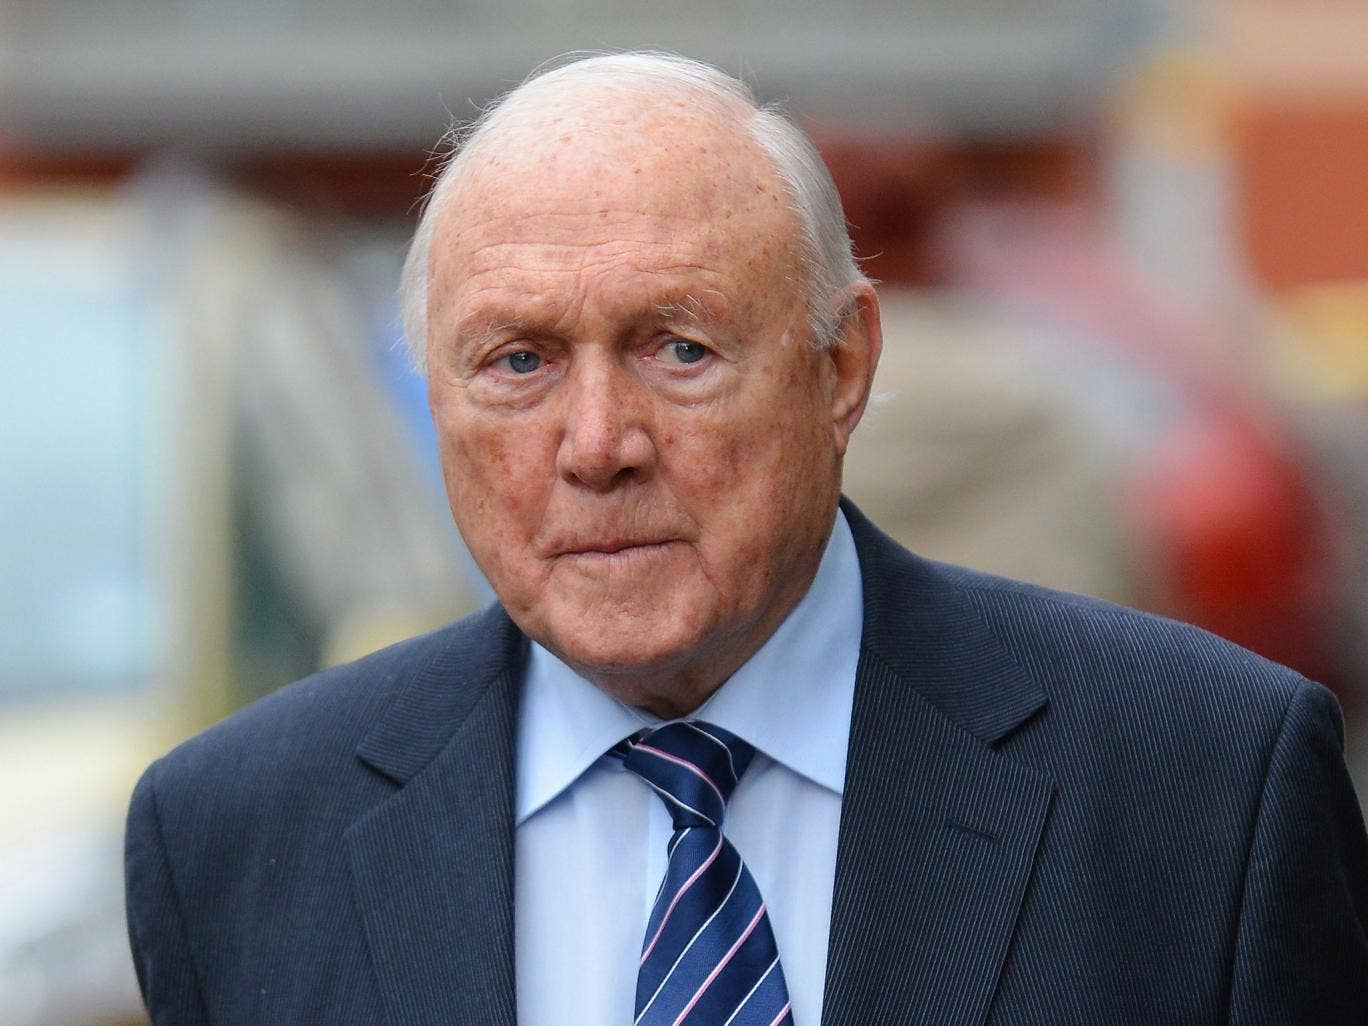 Former broadcaster Stuart Hall arrives at Preston Magistraits court in Preston on February 7, 2013. Hall, who appeared in court charged with one count of rape and 14 counts of indecent assault, addressed journalists outside the court stating that he was n